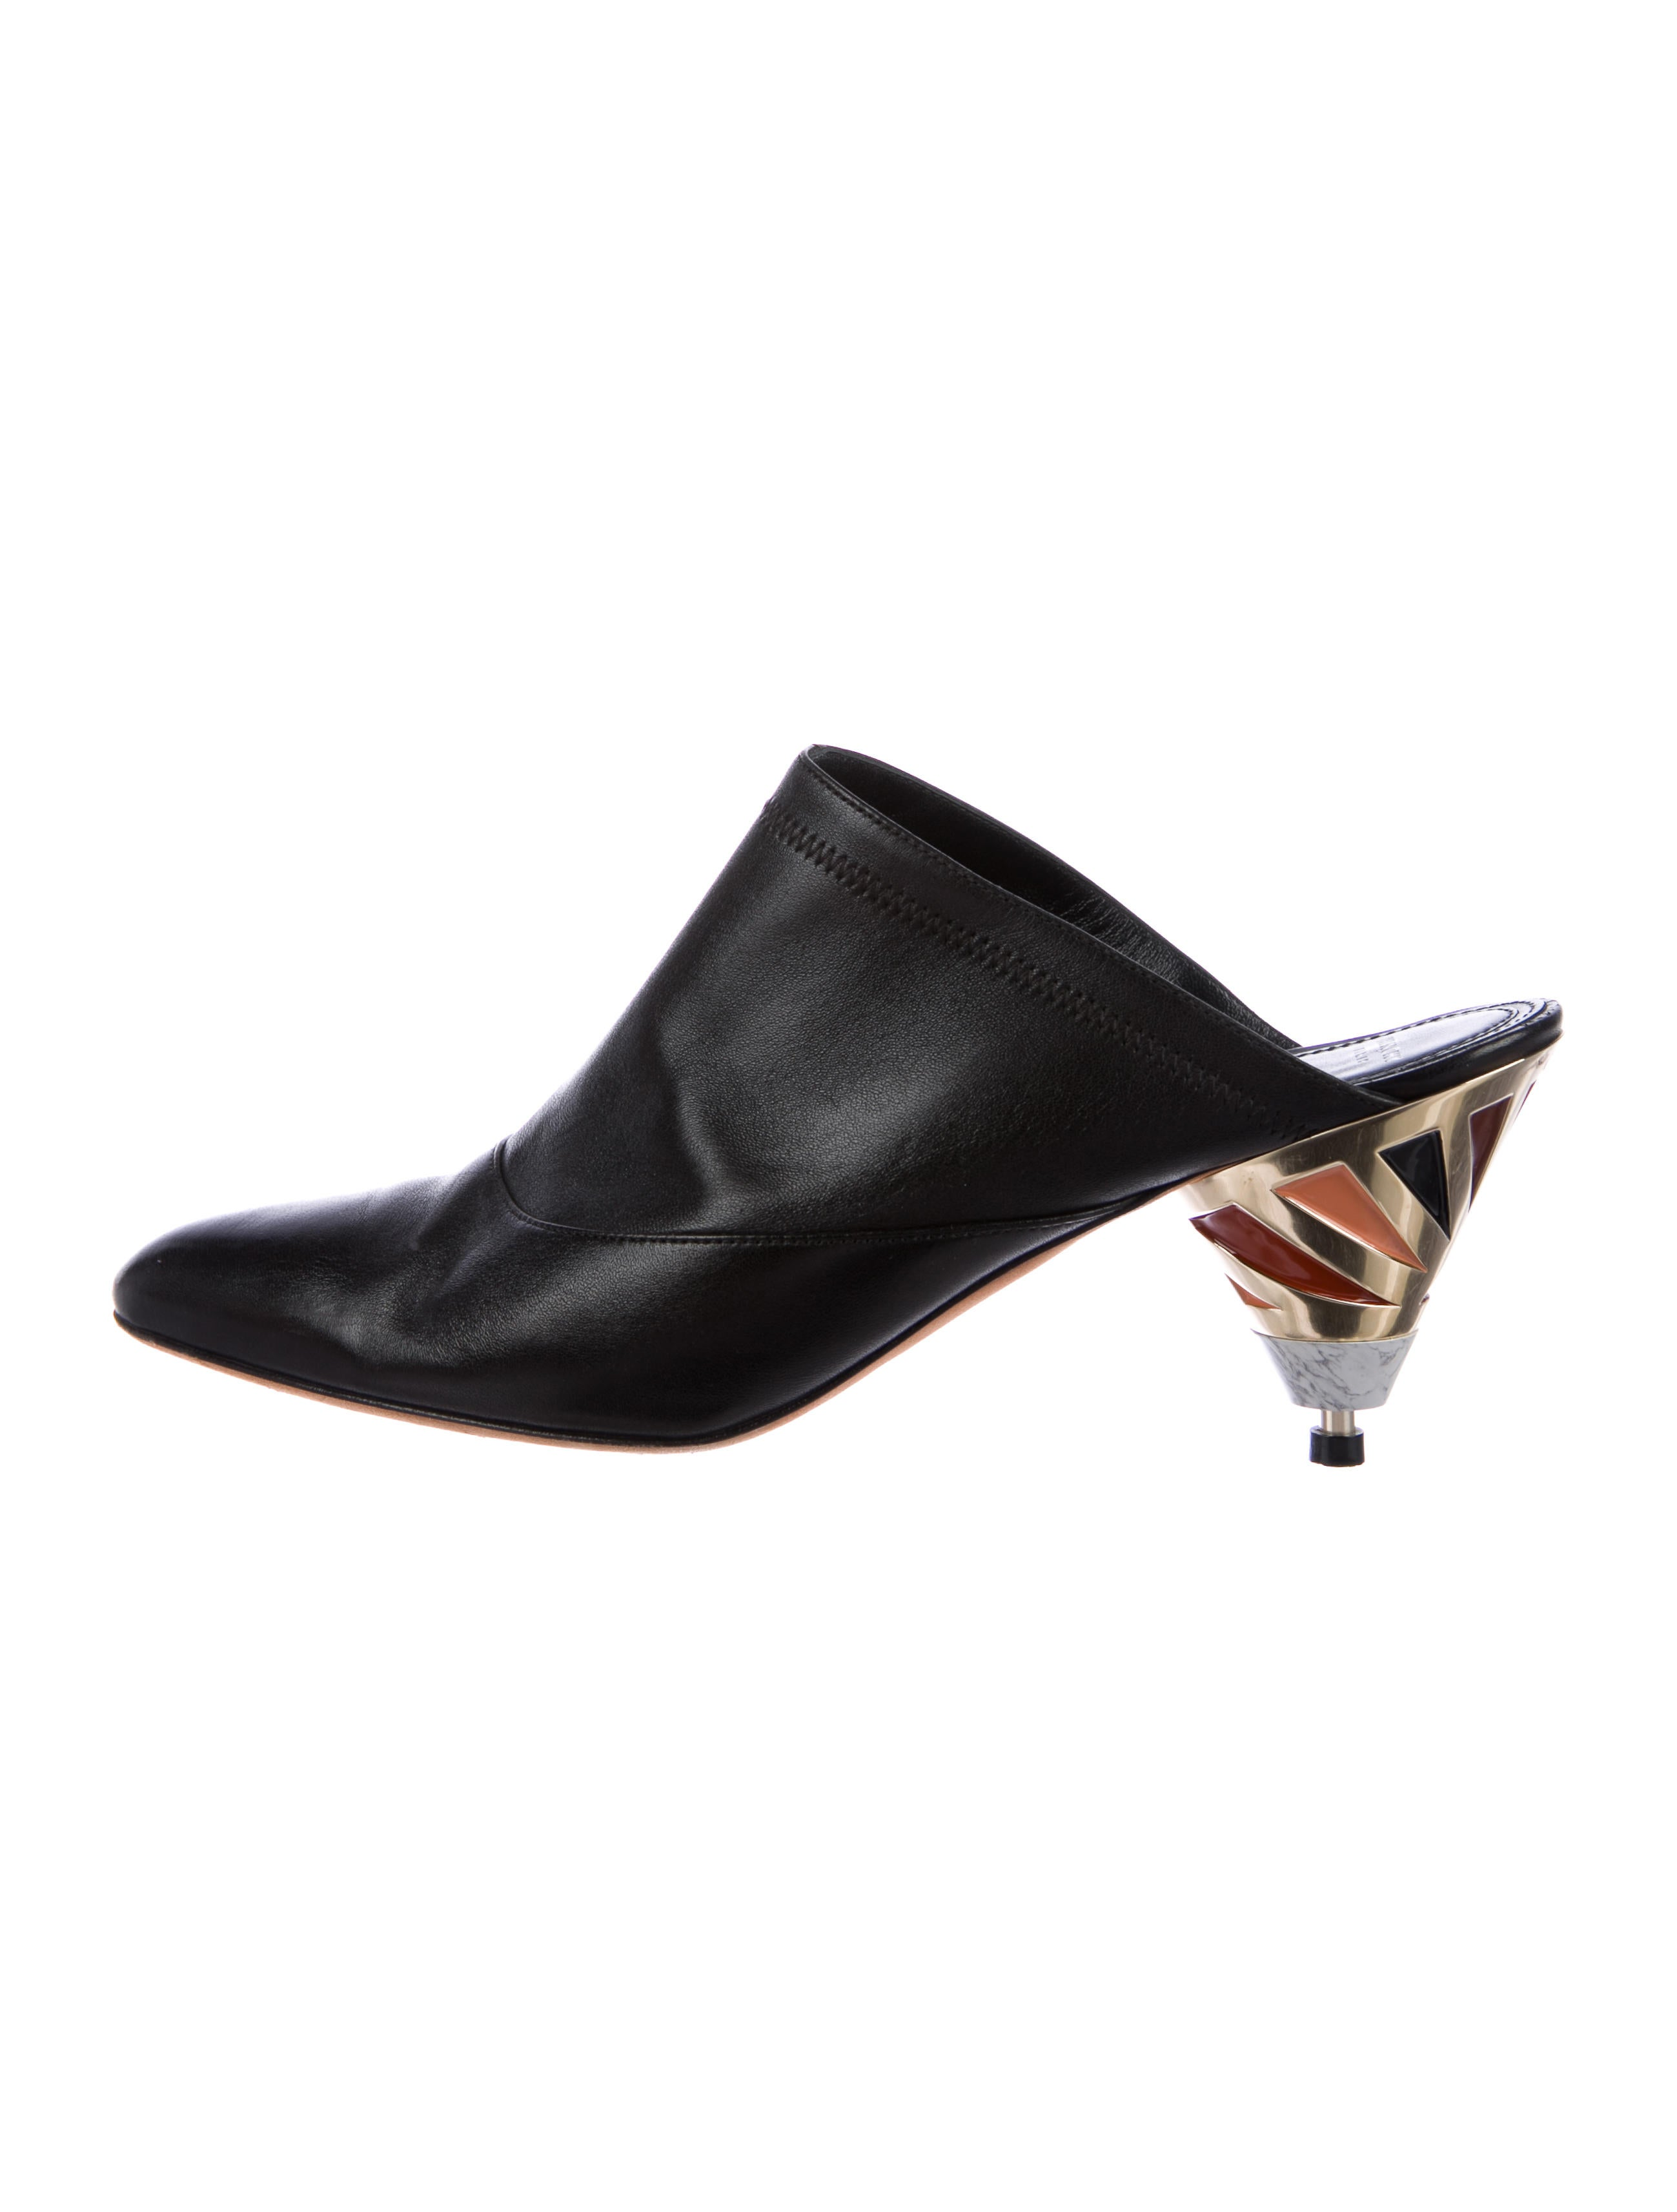 Givenchy Leather Pointed-Toe Mules free shipping 2015 with credit card sale online xkZYr